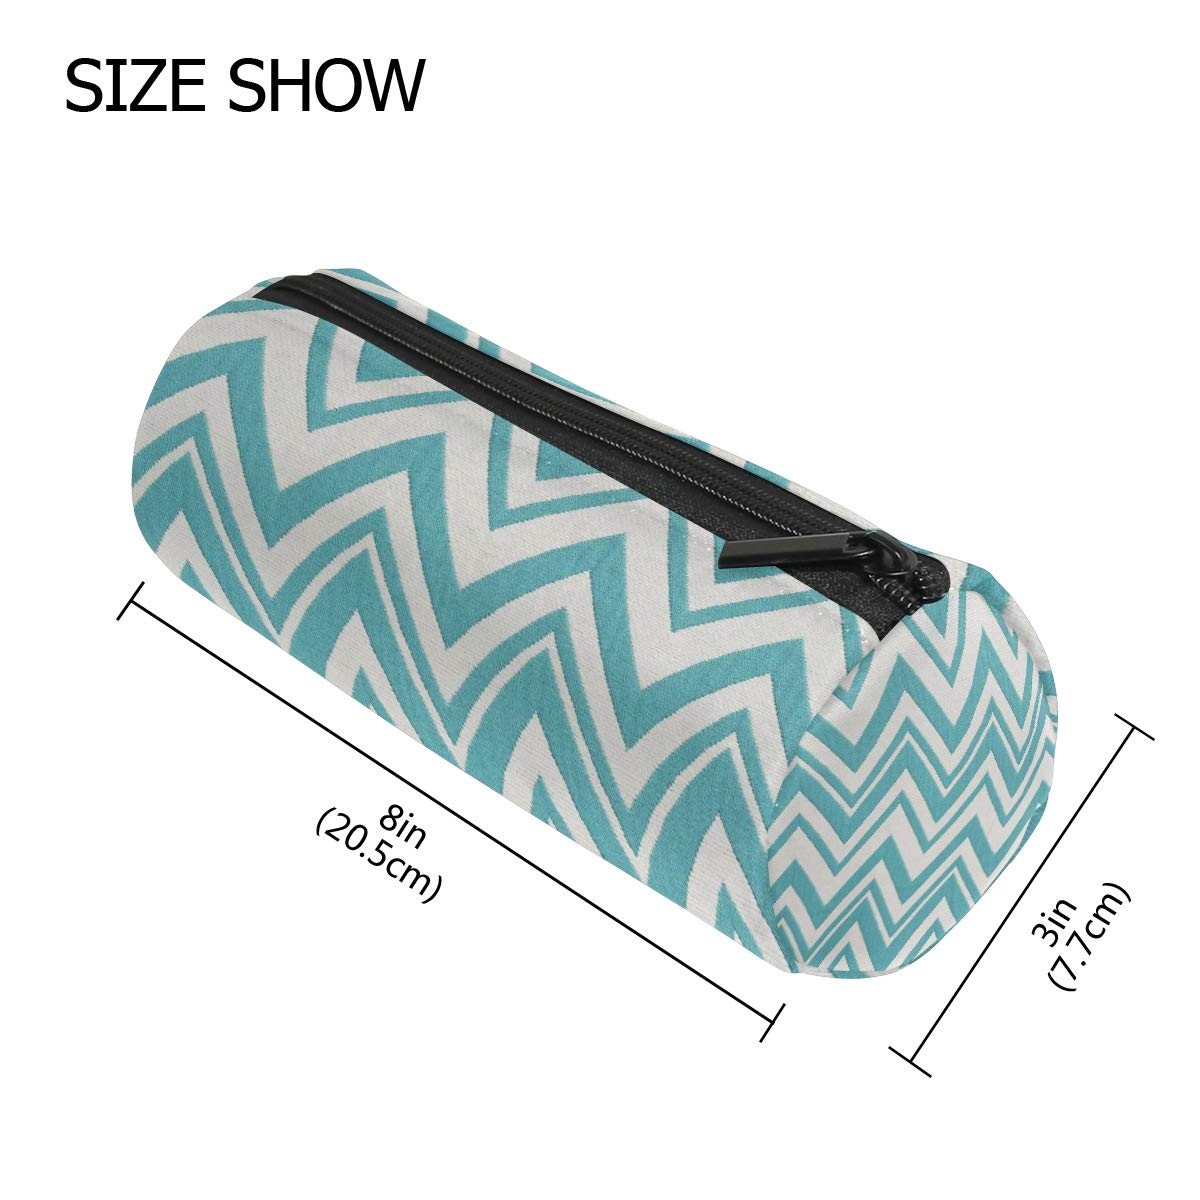 Pencil Case Teal and White Zig Zag School Pen Pouch Office Zippered Pencil Cases Holder Women Makeup Bag by KMAND (Image #2)